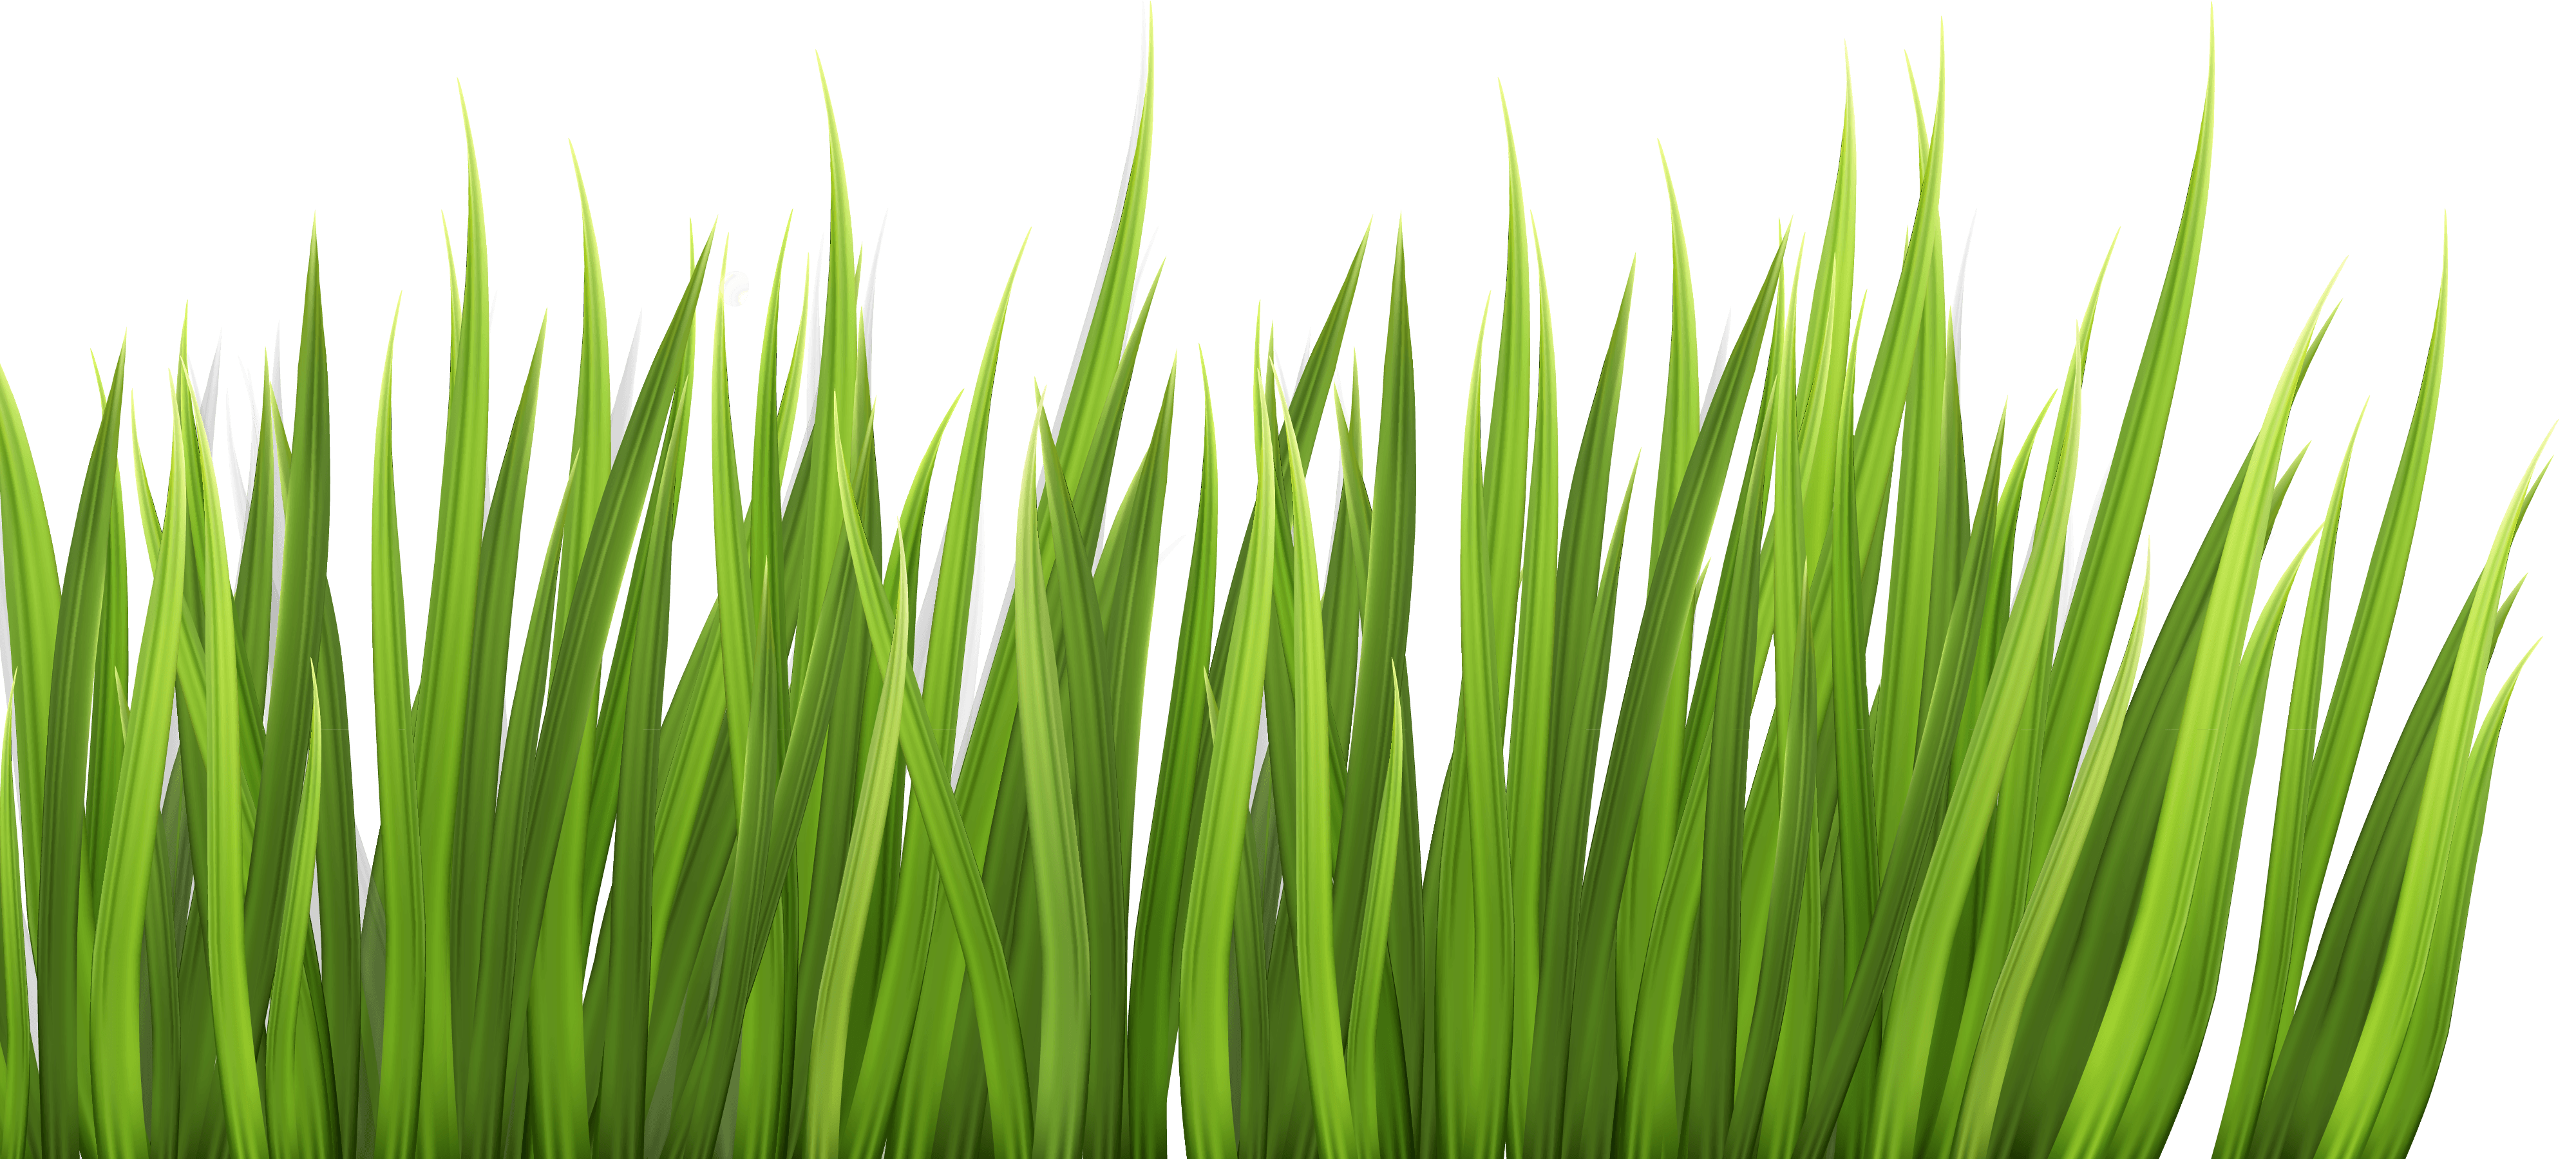 PPG - Grass Feature Cropped